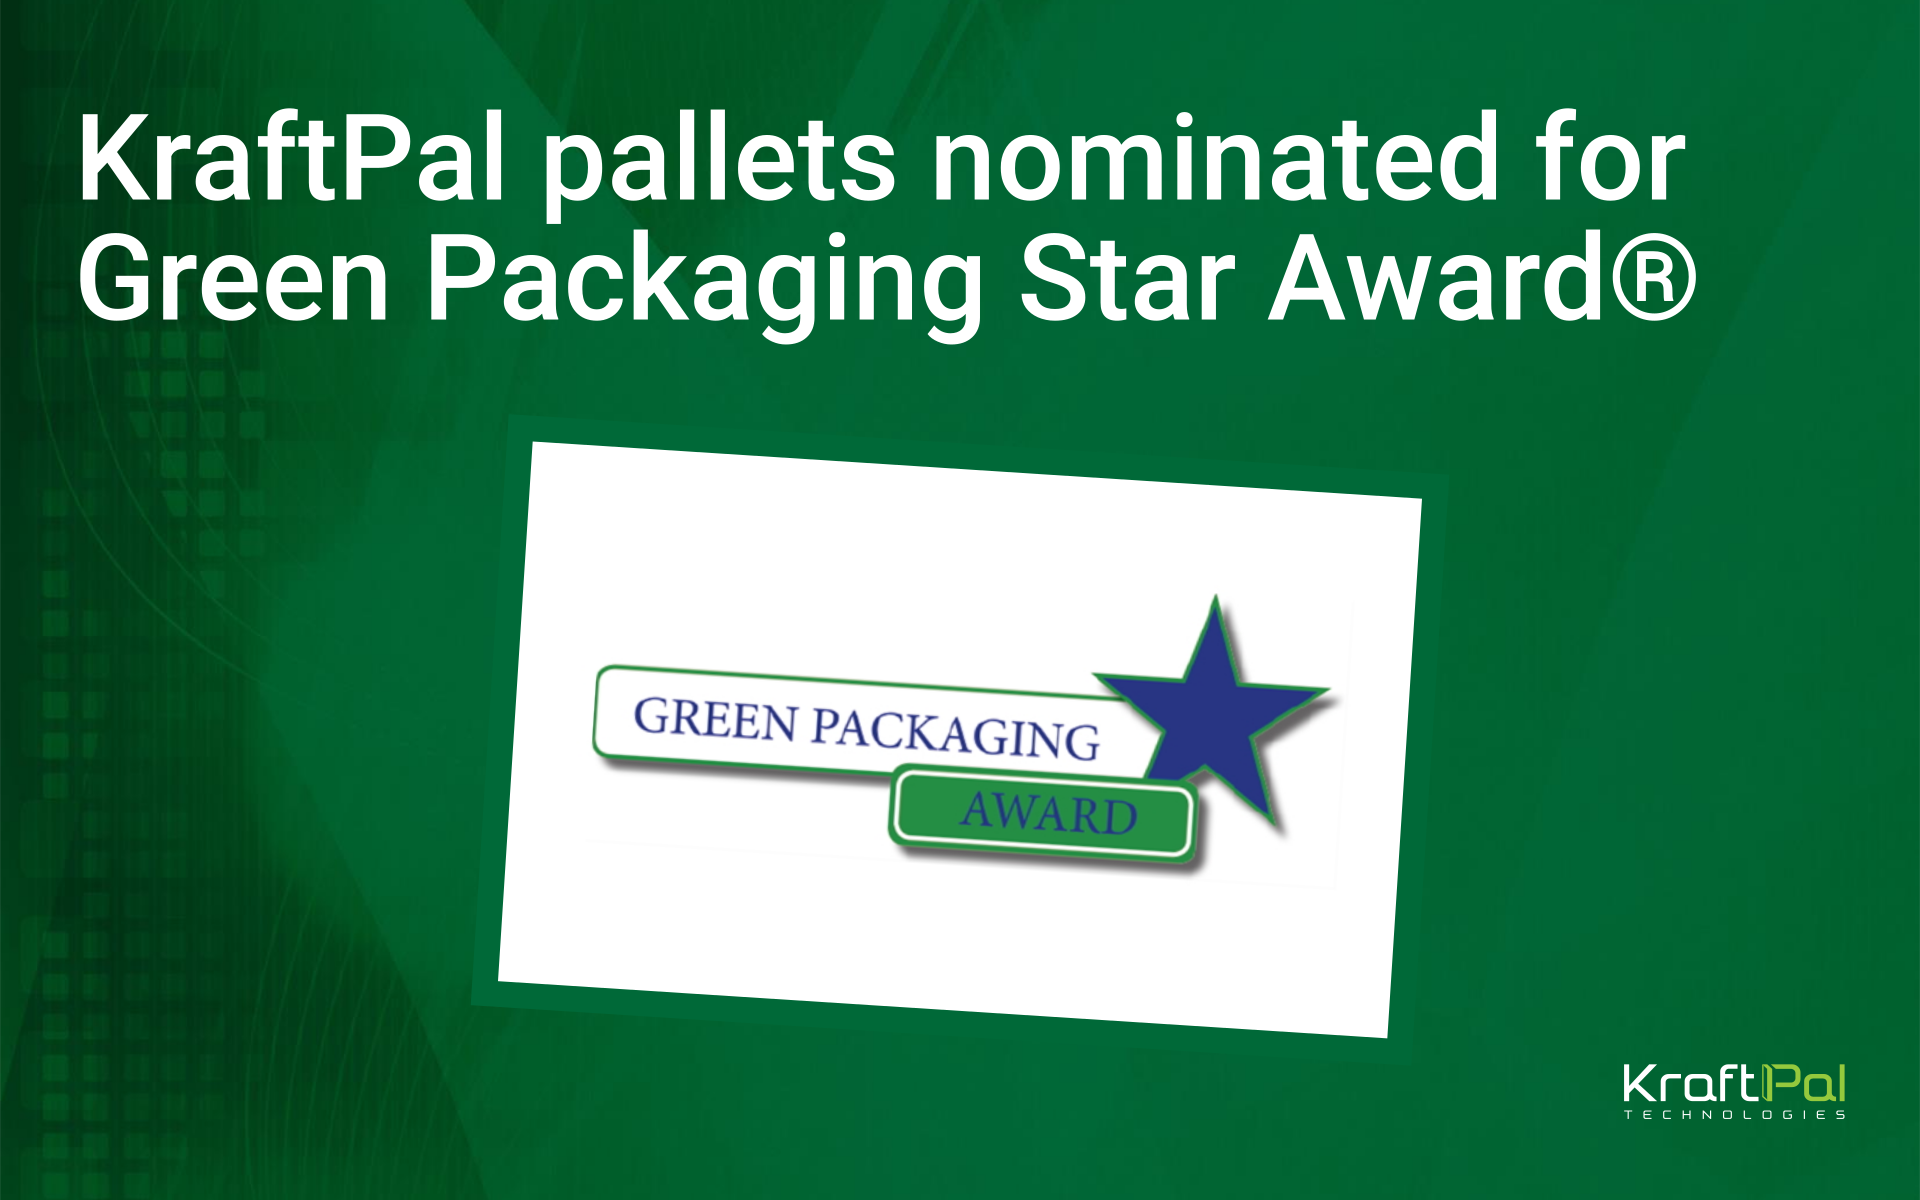 KraftPal pallets nominated for Green Packaging Star Award®